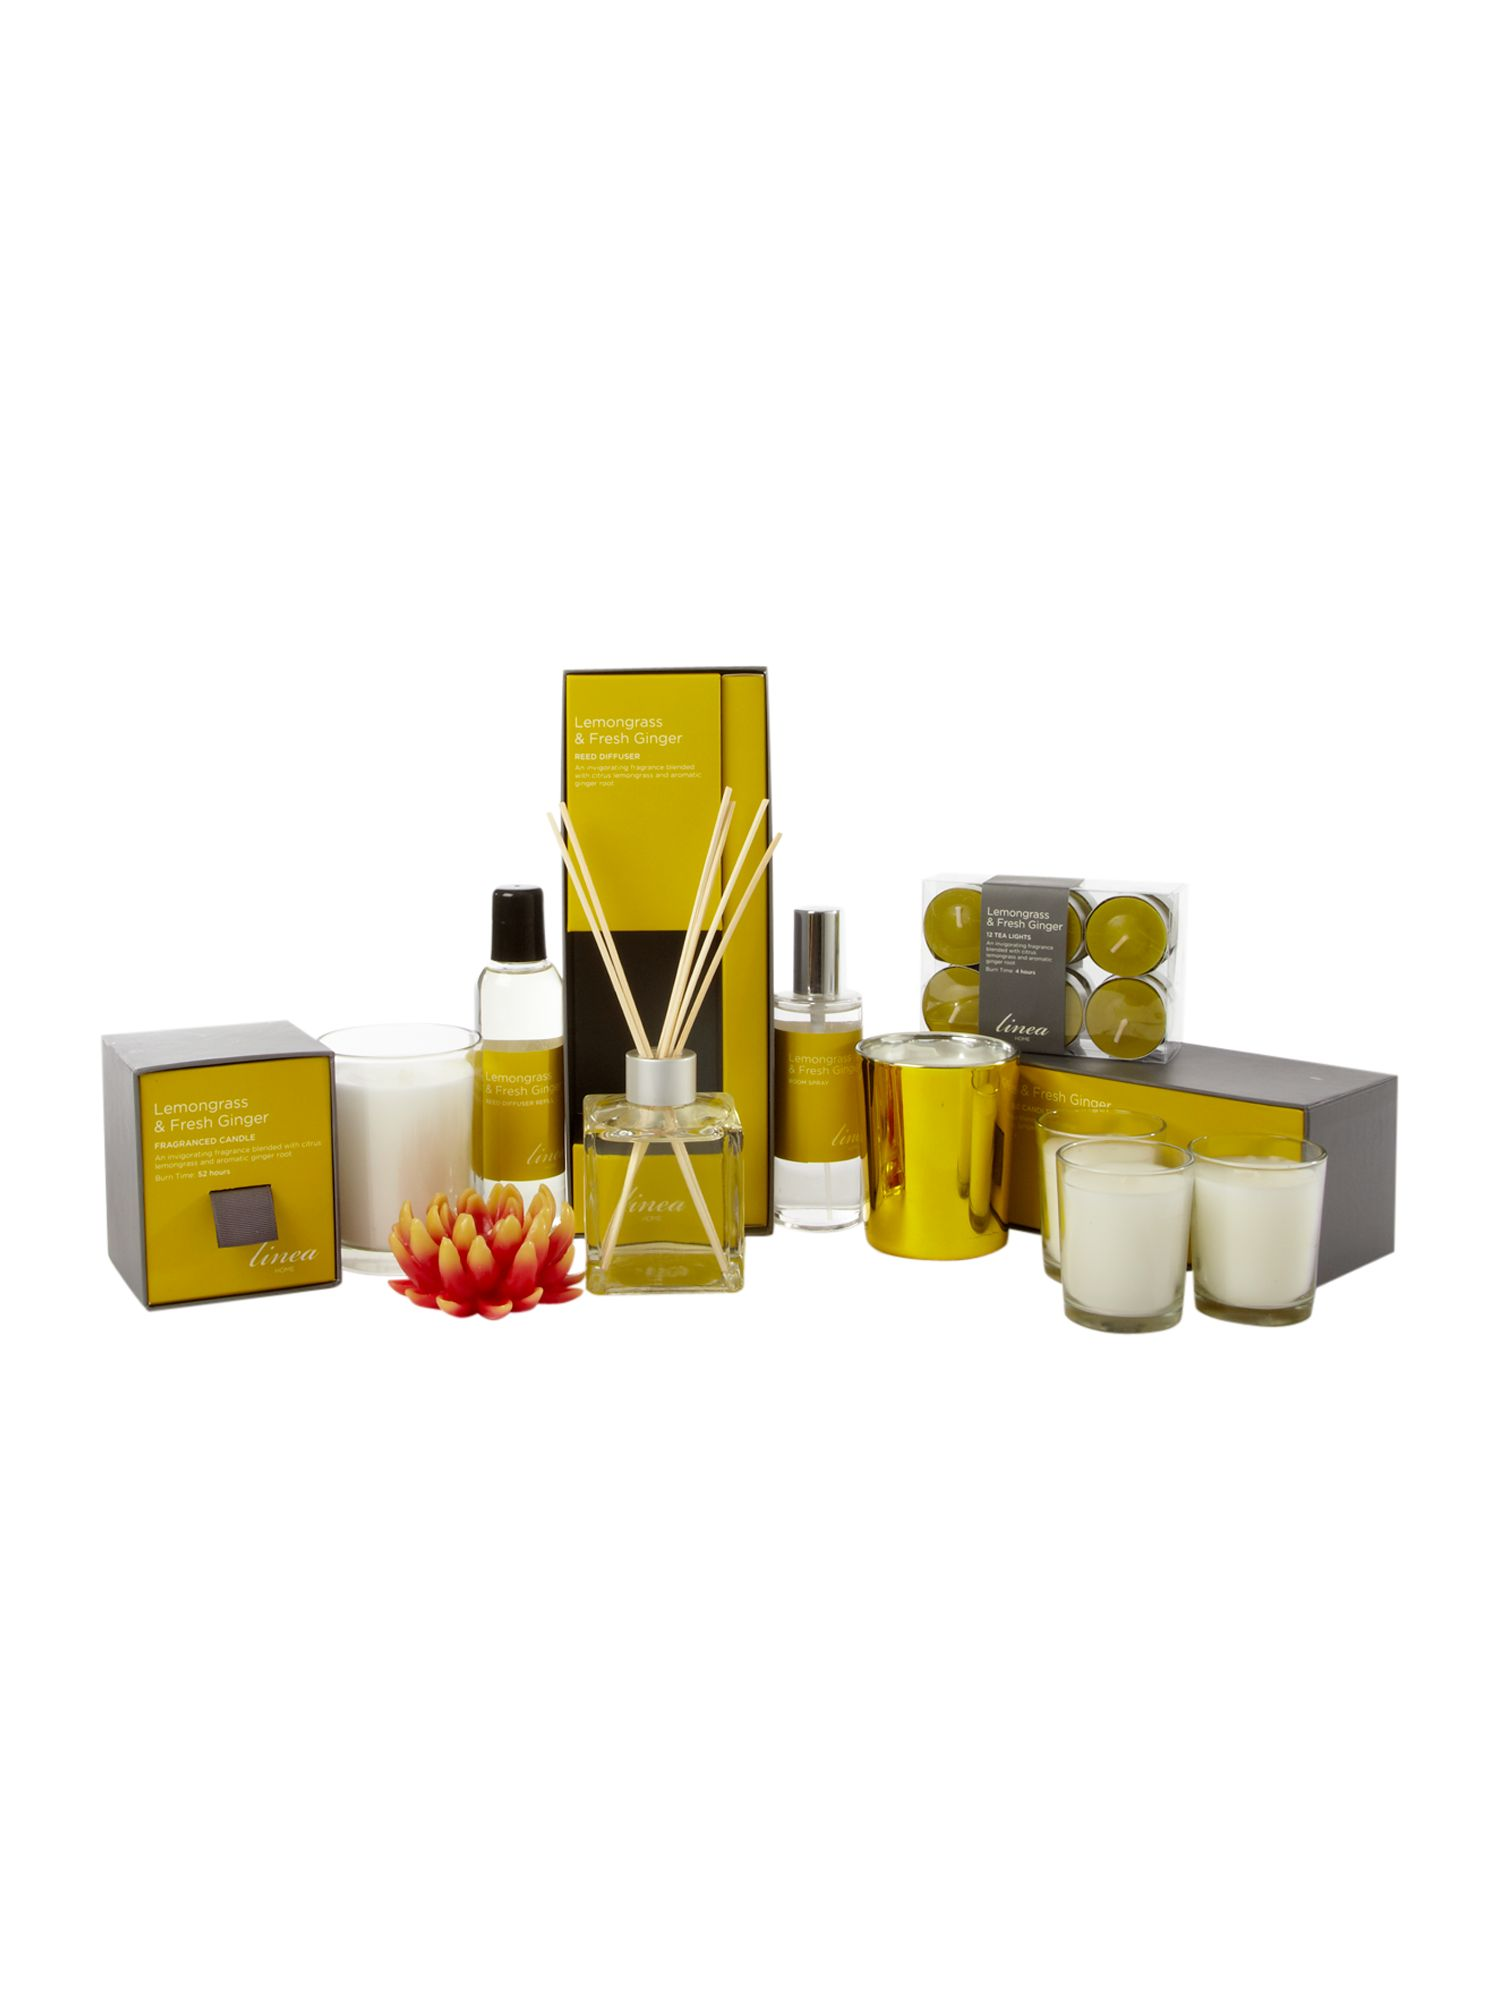 Lemongrass and ginger room fragrance